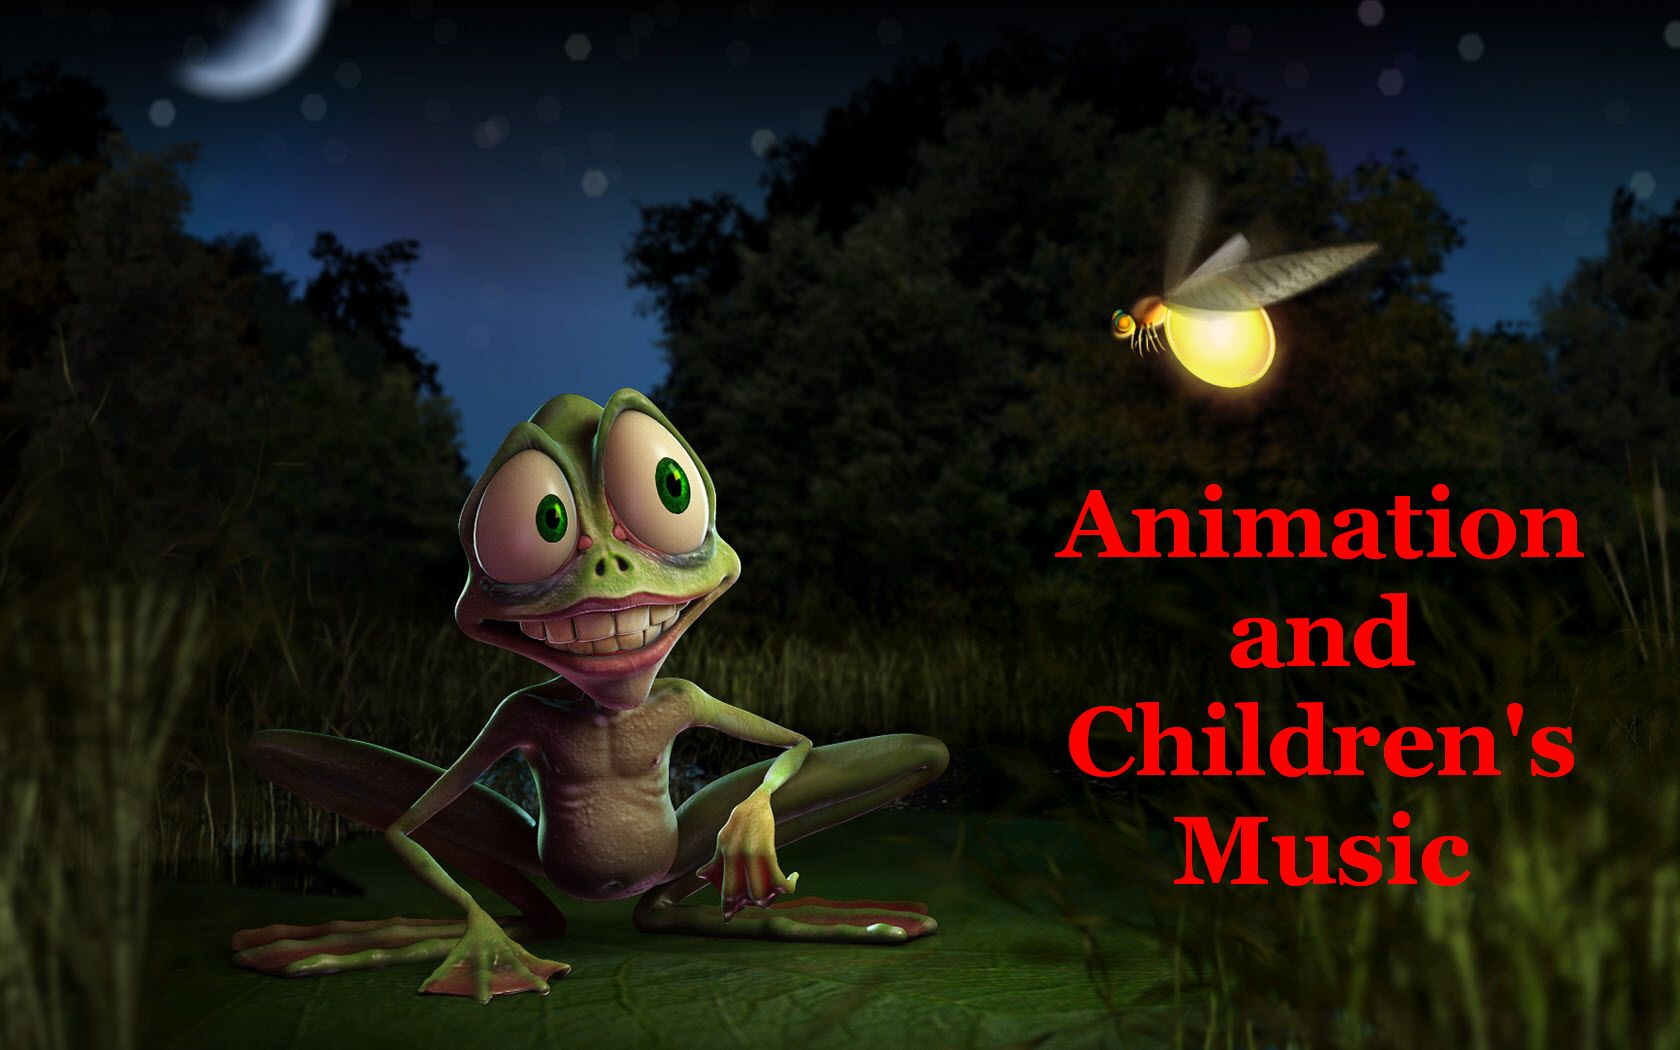 Animation, Children's music